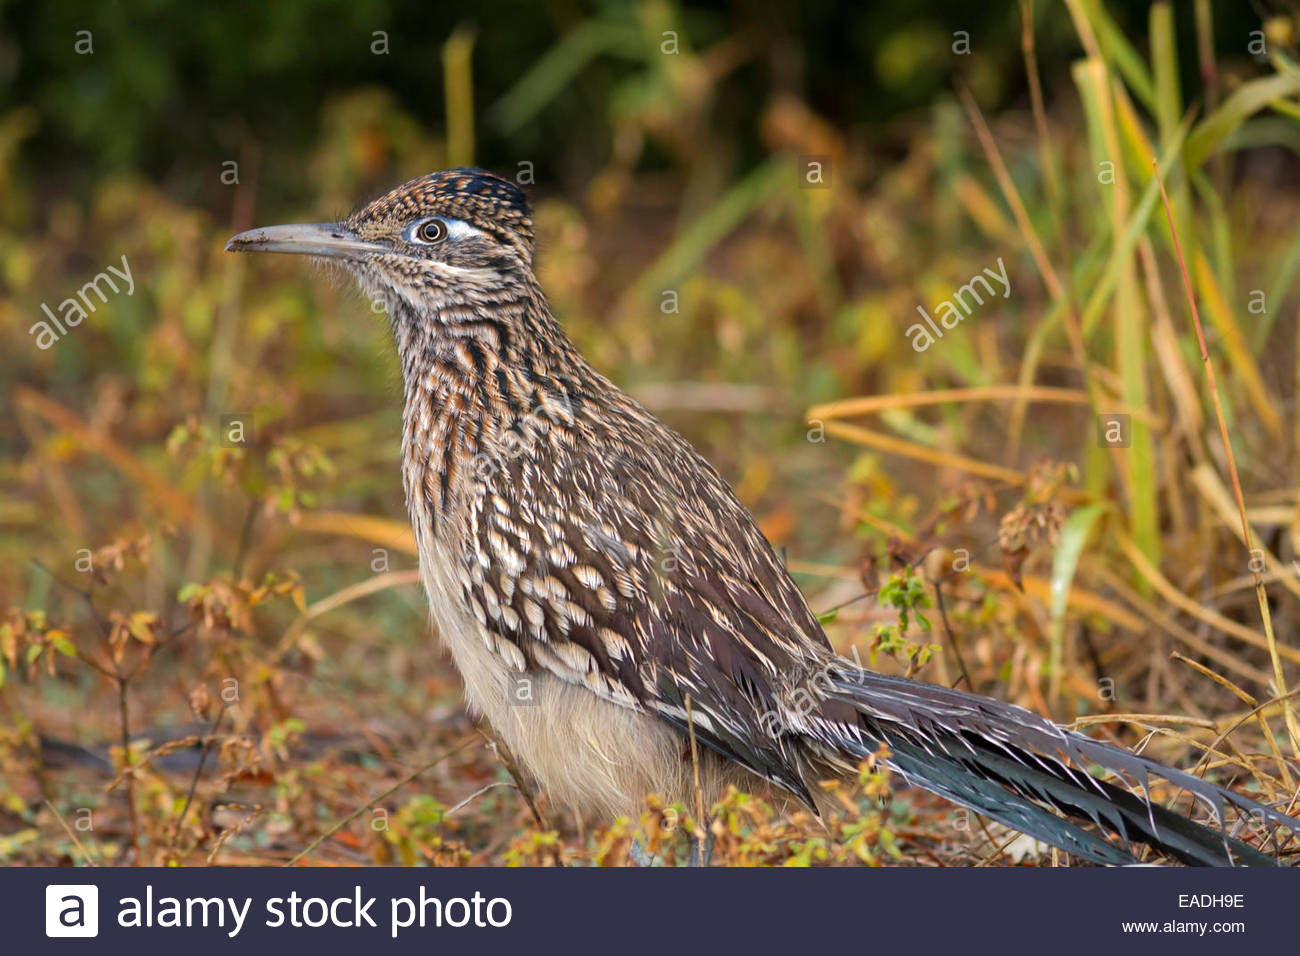 An adult Greater Roadrunner(Geococcyx californianus) with wet feathers looking for food after a rain. Image taken - Stock Image